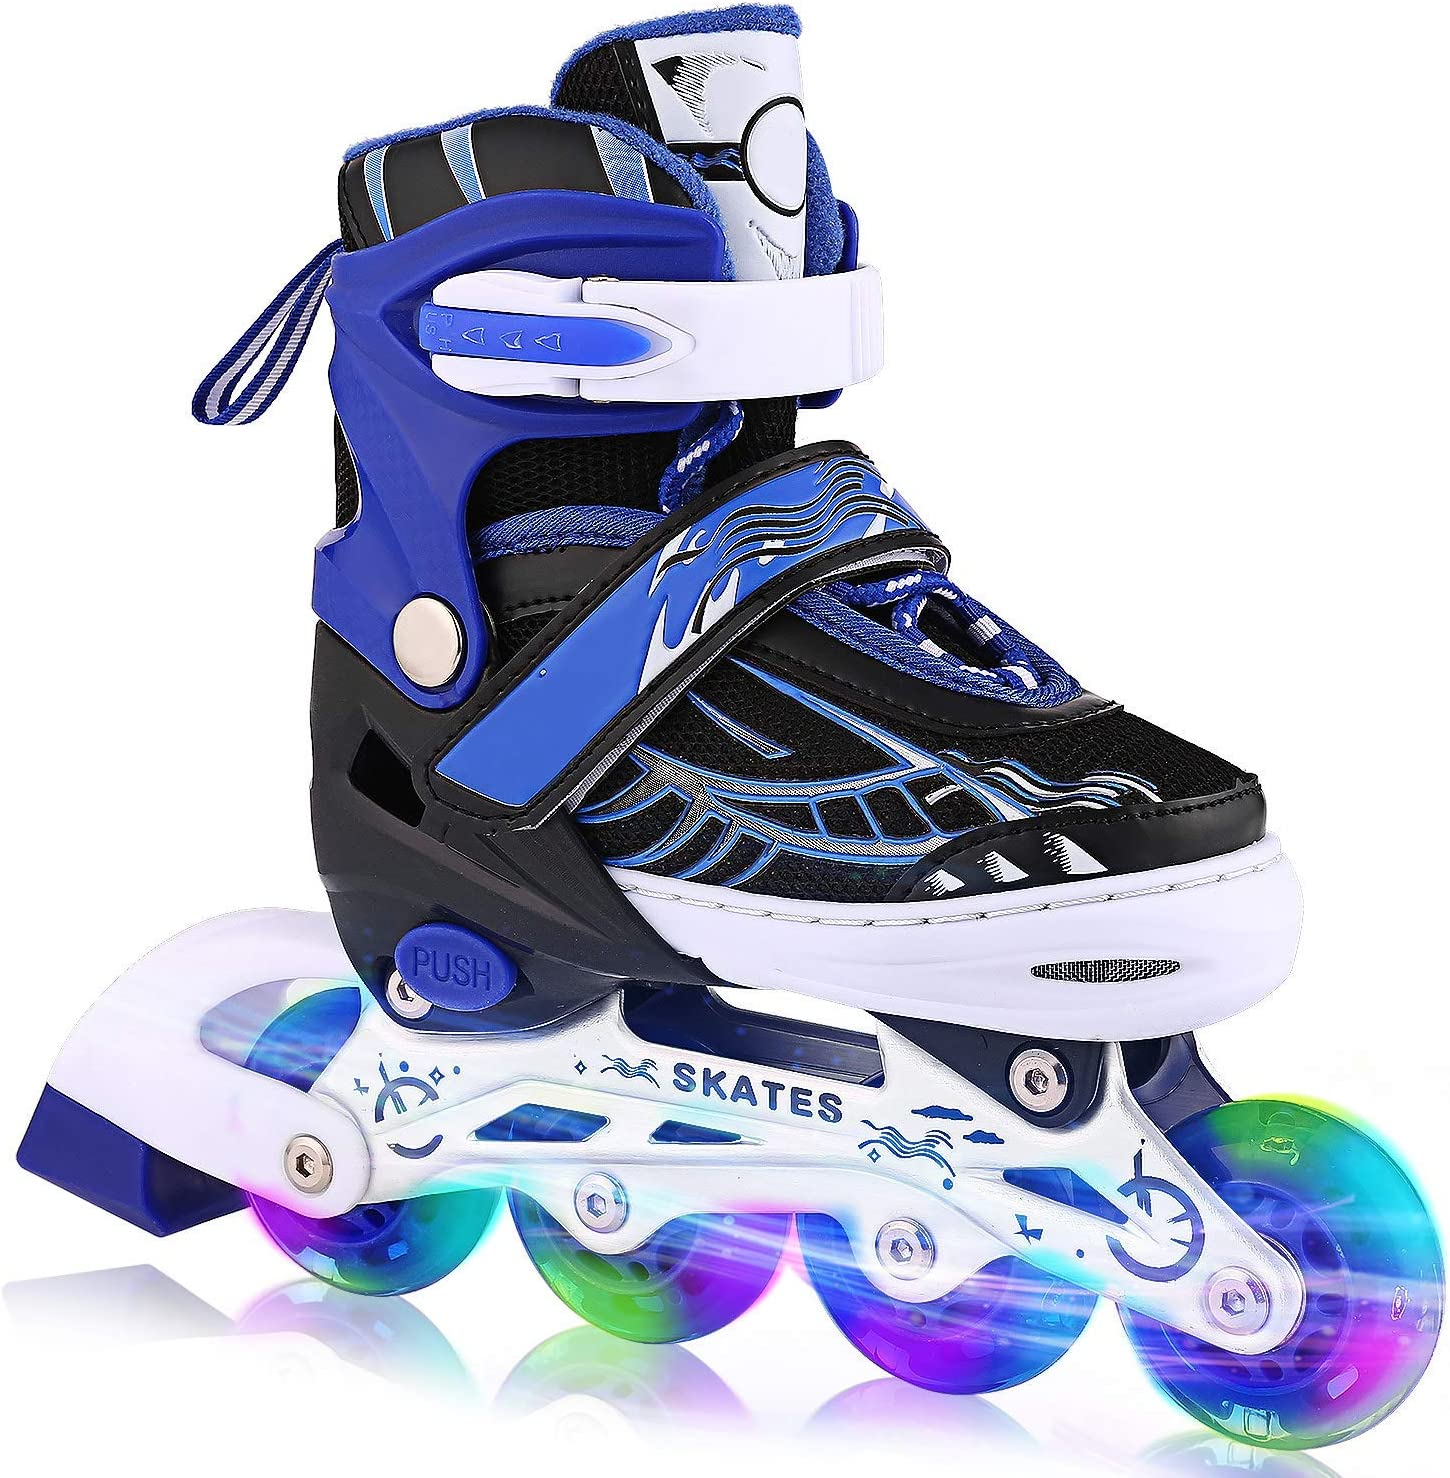 OUTCAMER Inline Skates with Light Up Wheels Adjustable Roller Skates / UK